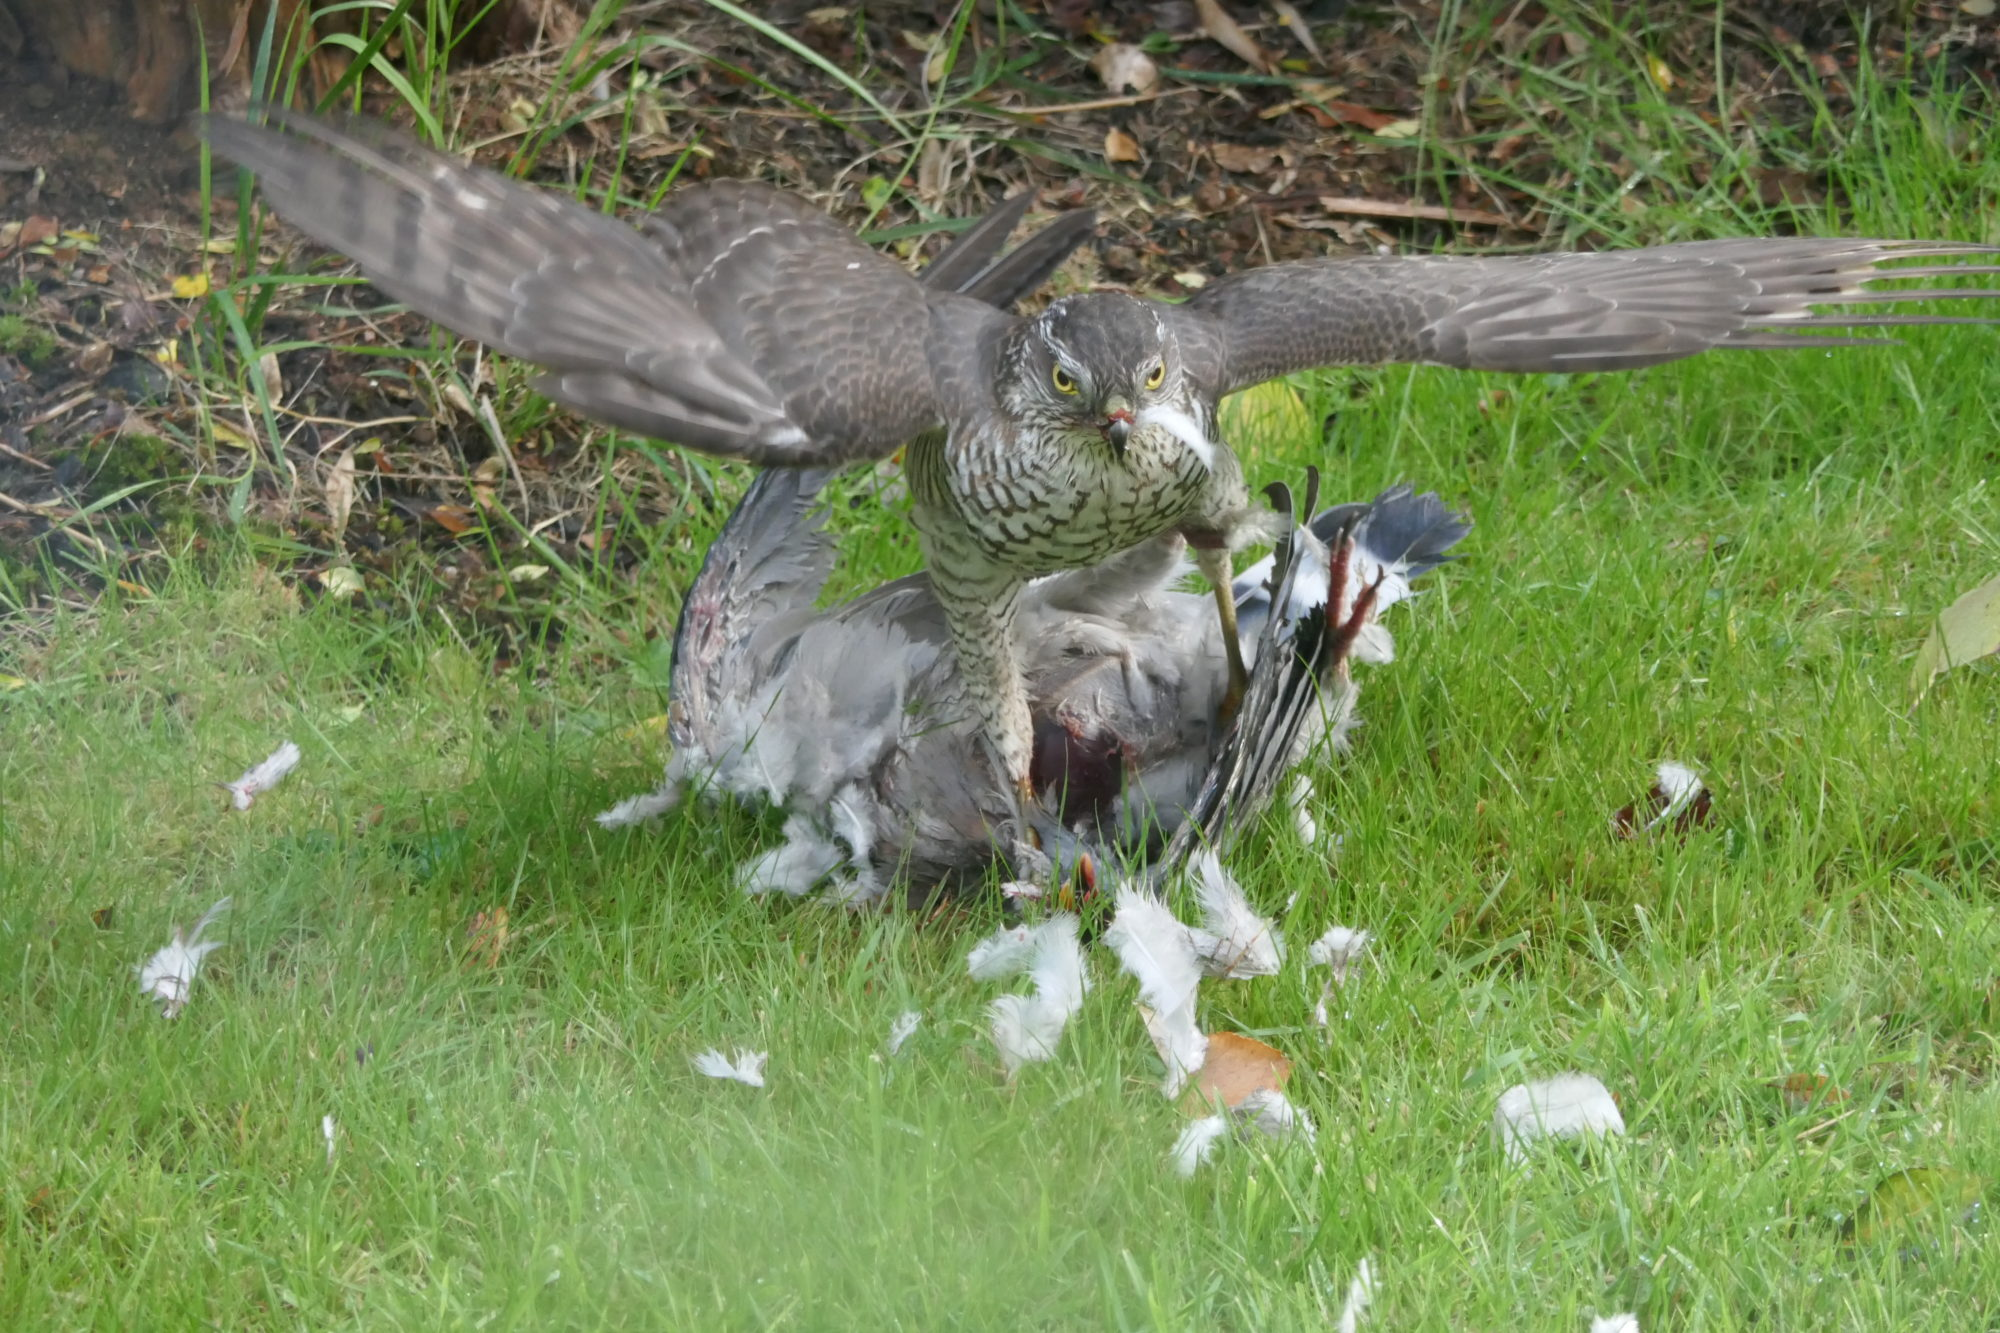 Photograph of a Sparrowhawk attacking a Pigeon on grass with its wings outstretched.